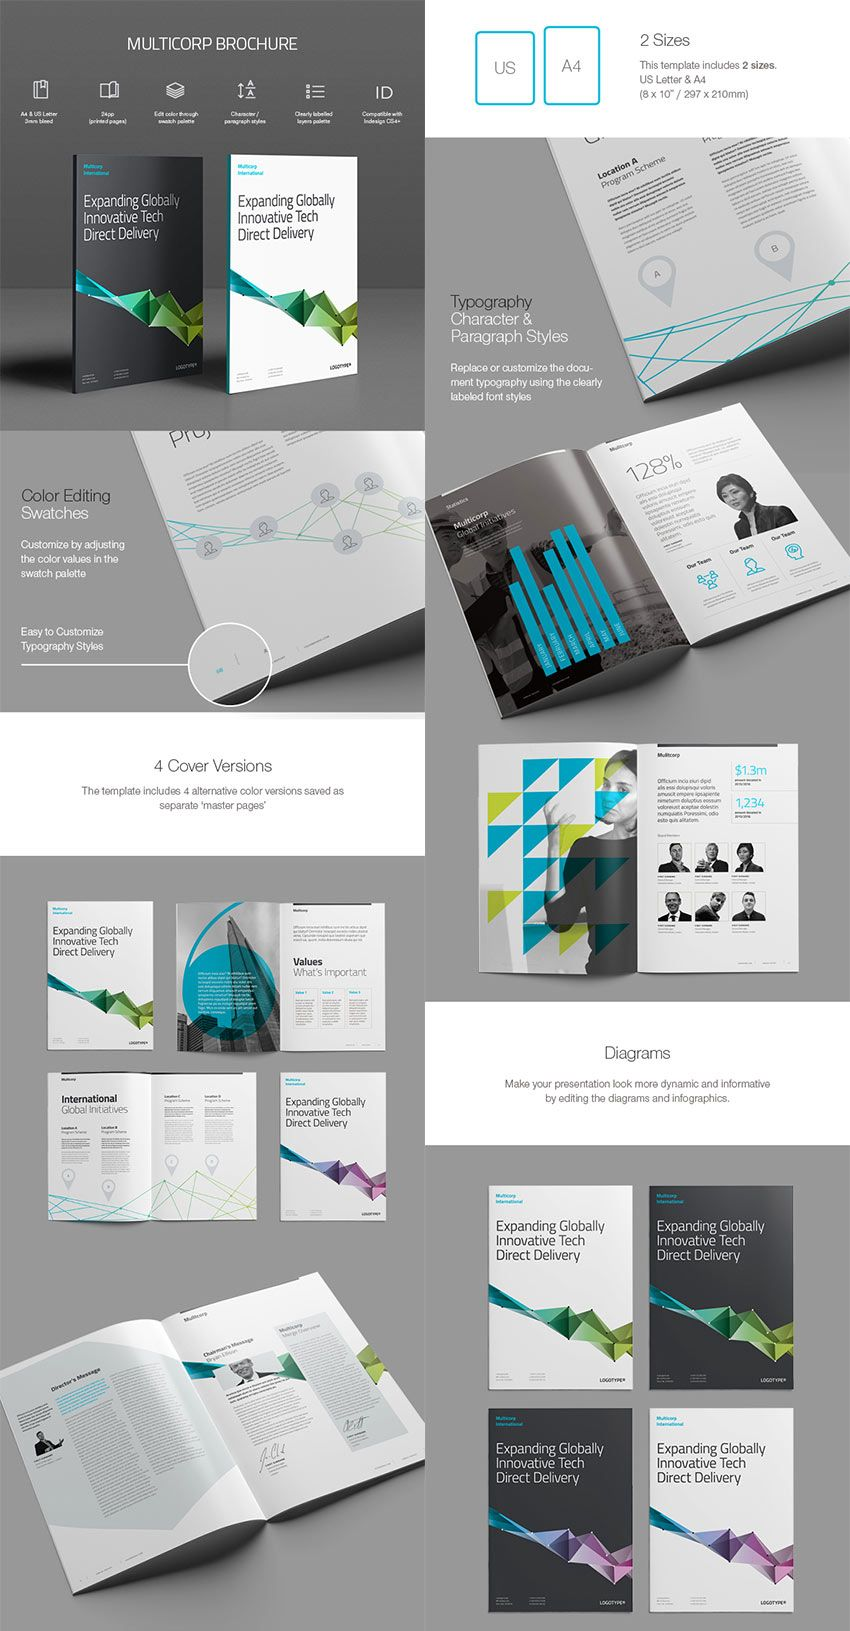 Best InDesign Brochure Templates For Creative Business - Marketing brochures templates